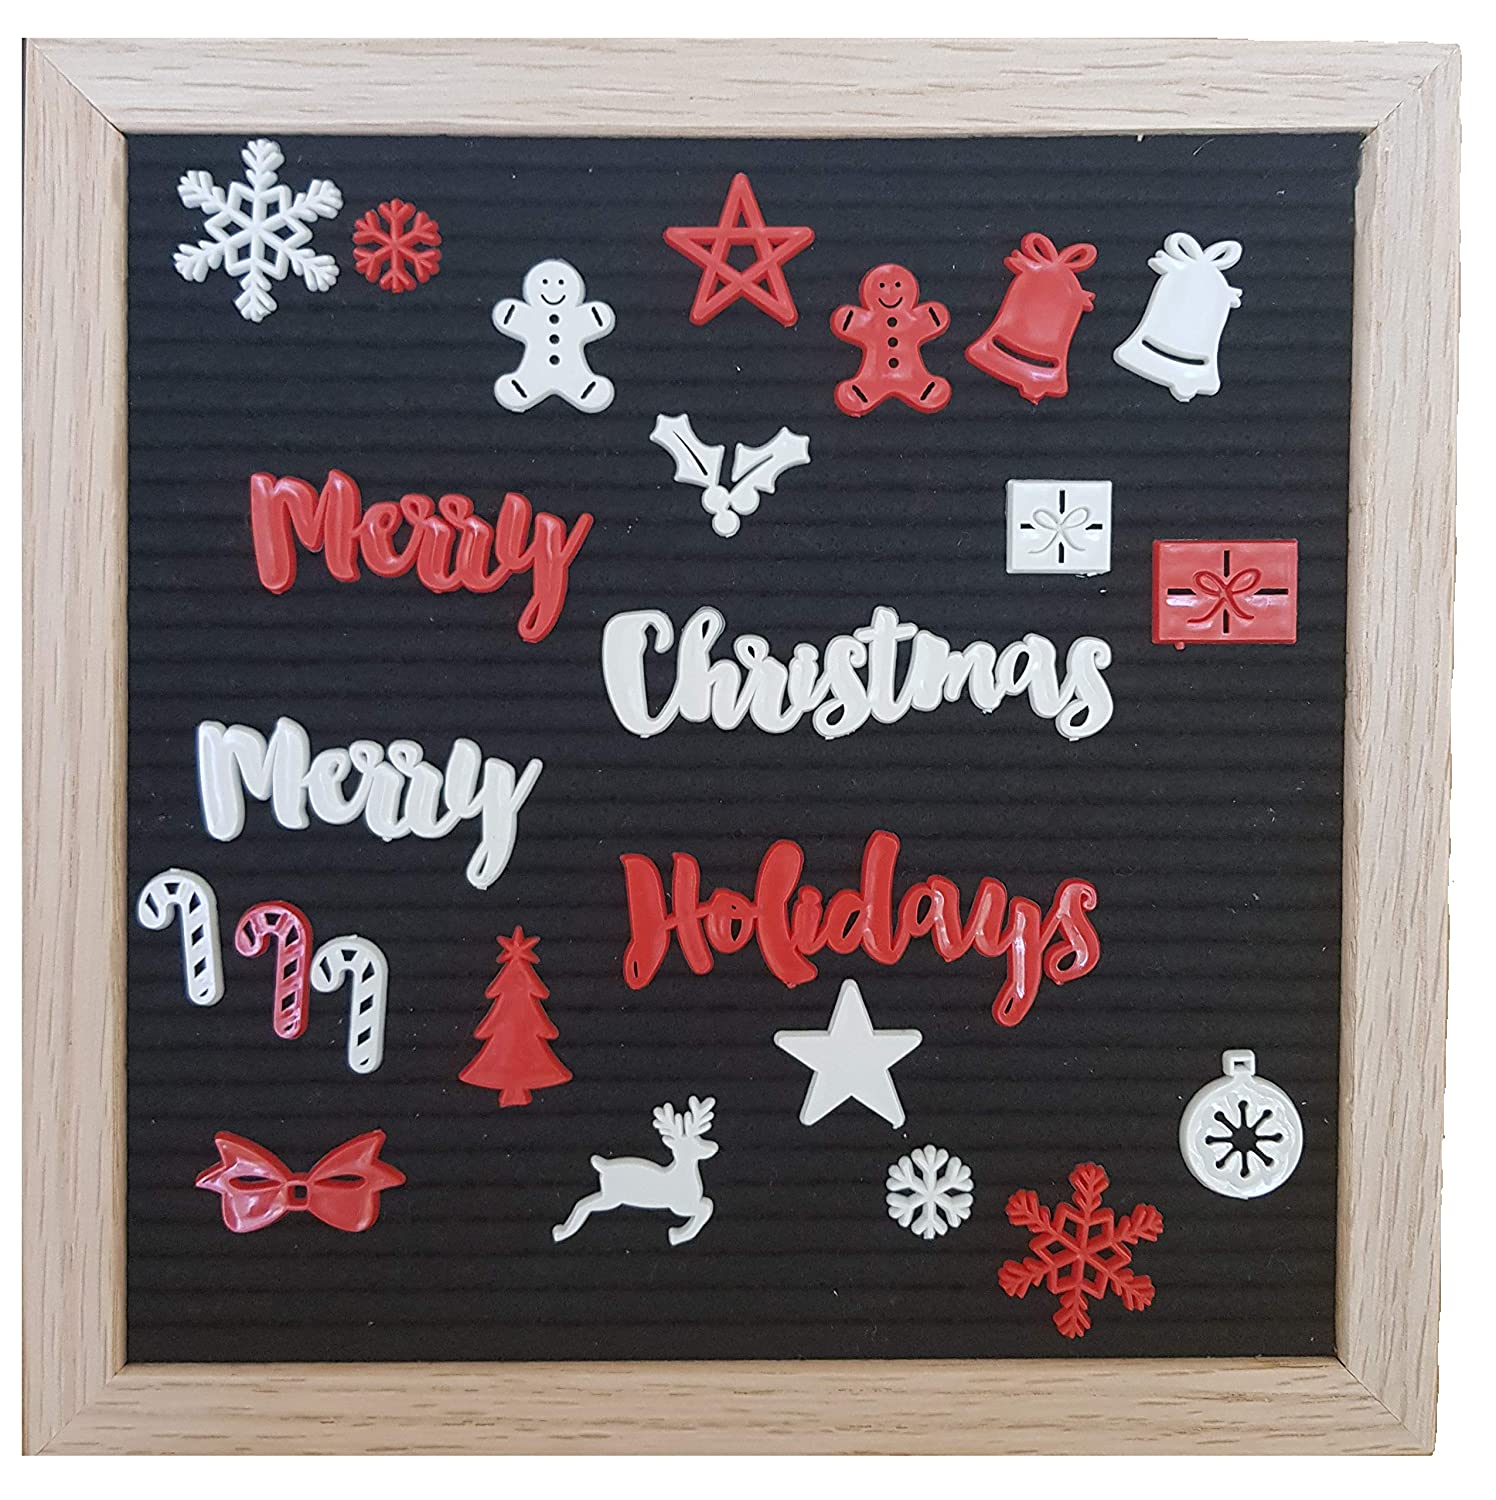 Christmas Letters & Signs For Any Felt Letter Board Words and Symbols for Holiday Season - Board Not Included The Stork & I